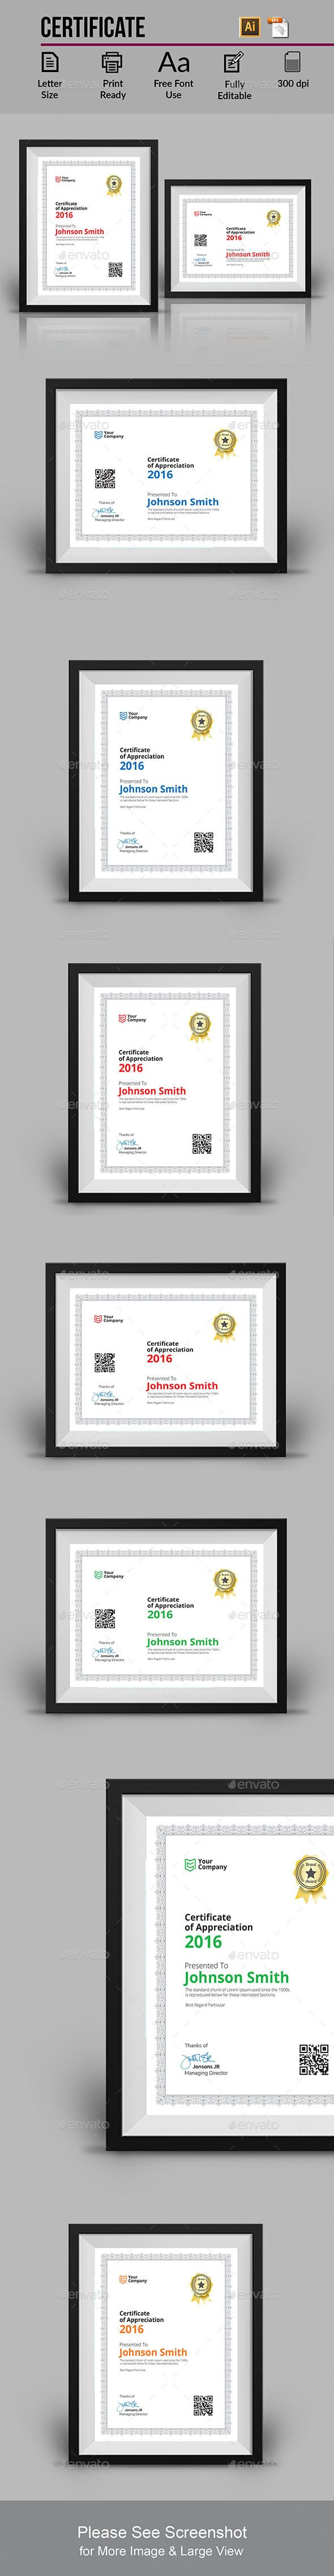 186 best certificate templates designs images on pinterest certificate yelopaper Image collections